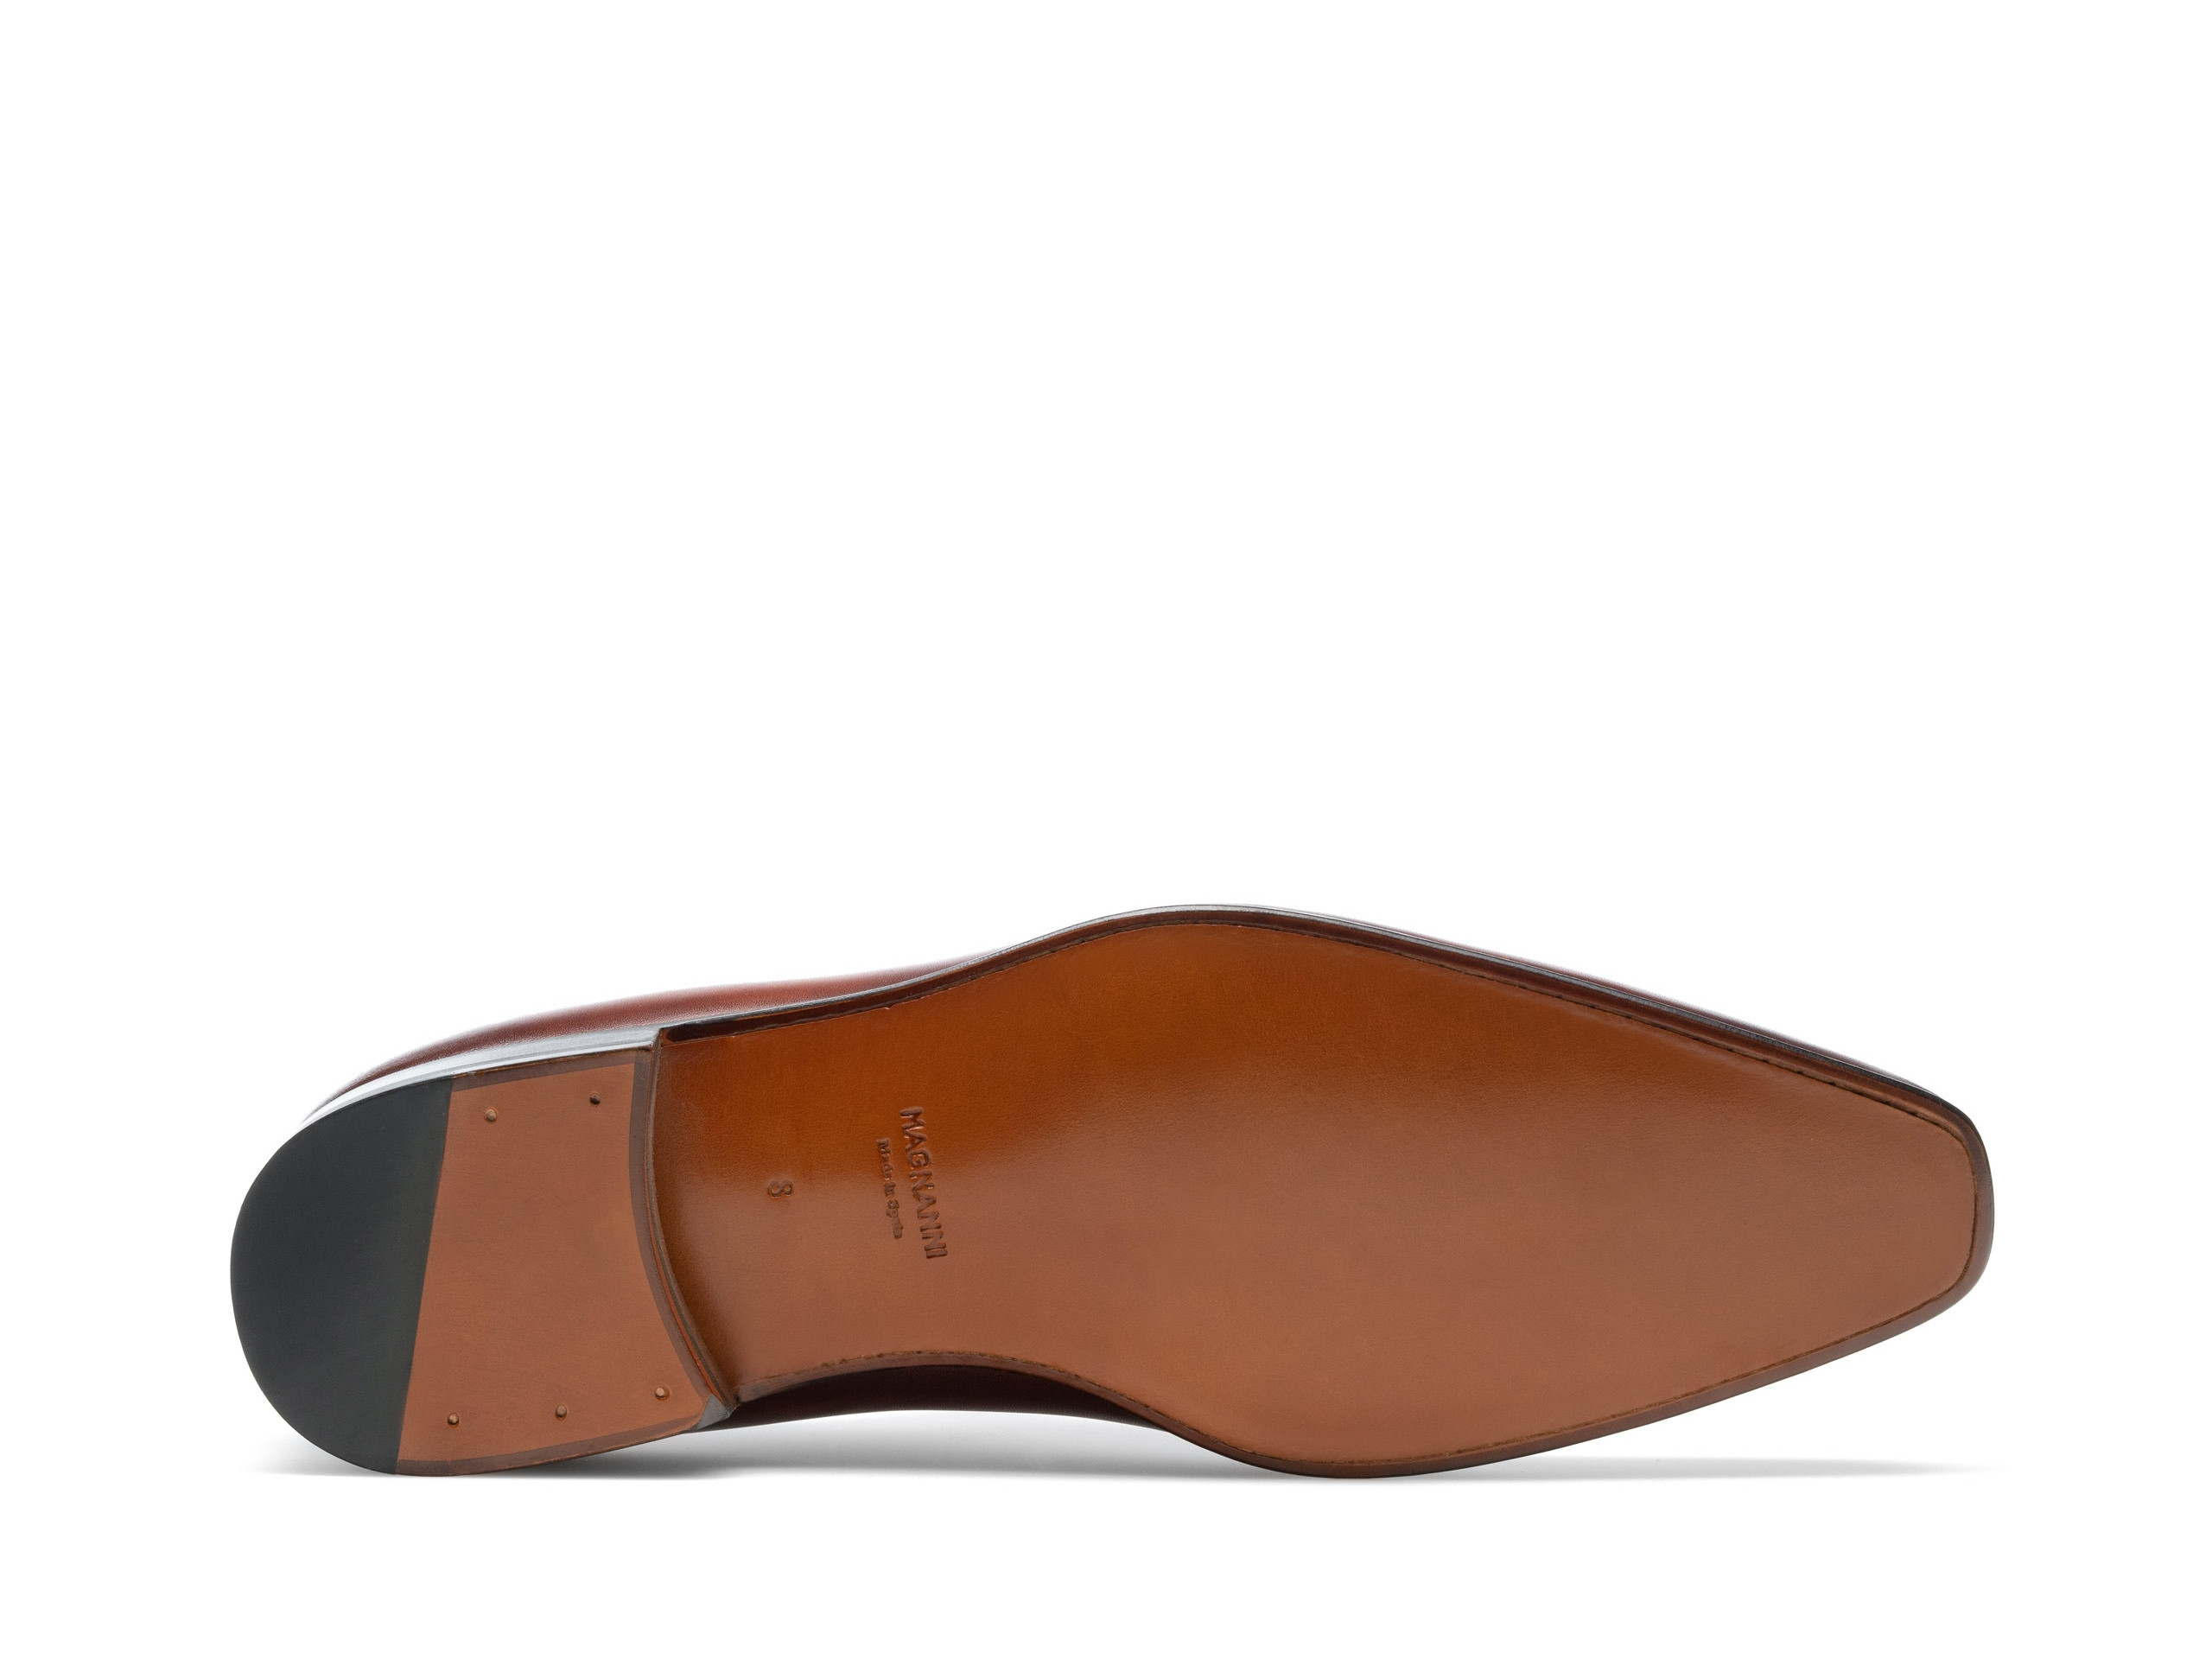 The sole of the Cruz